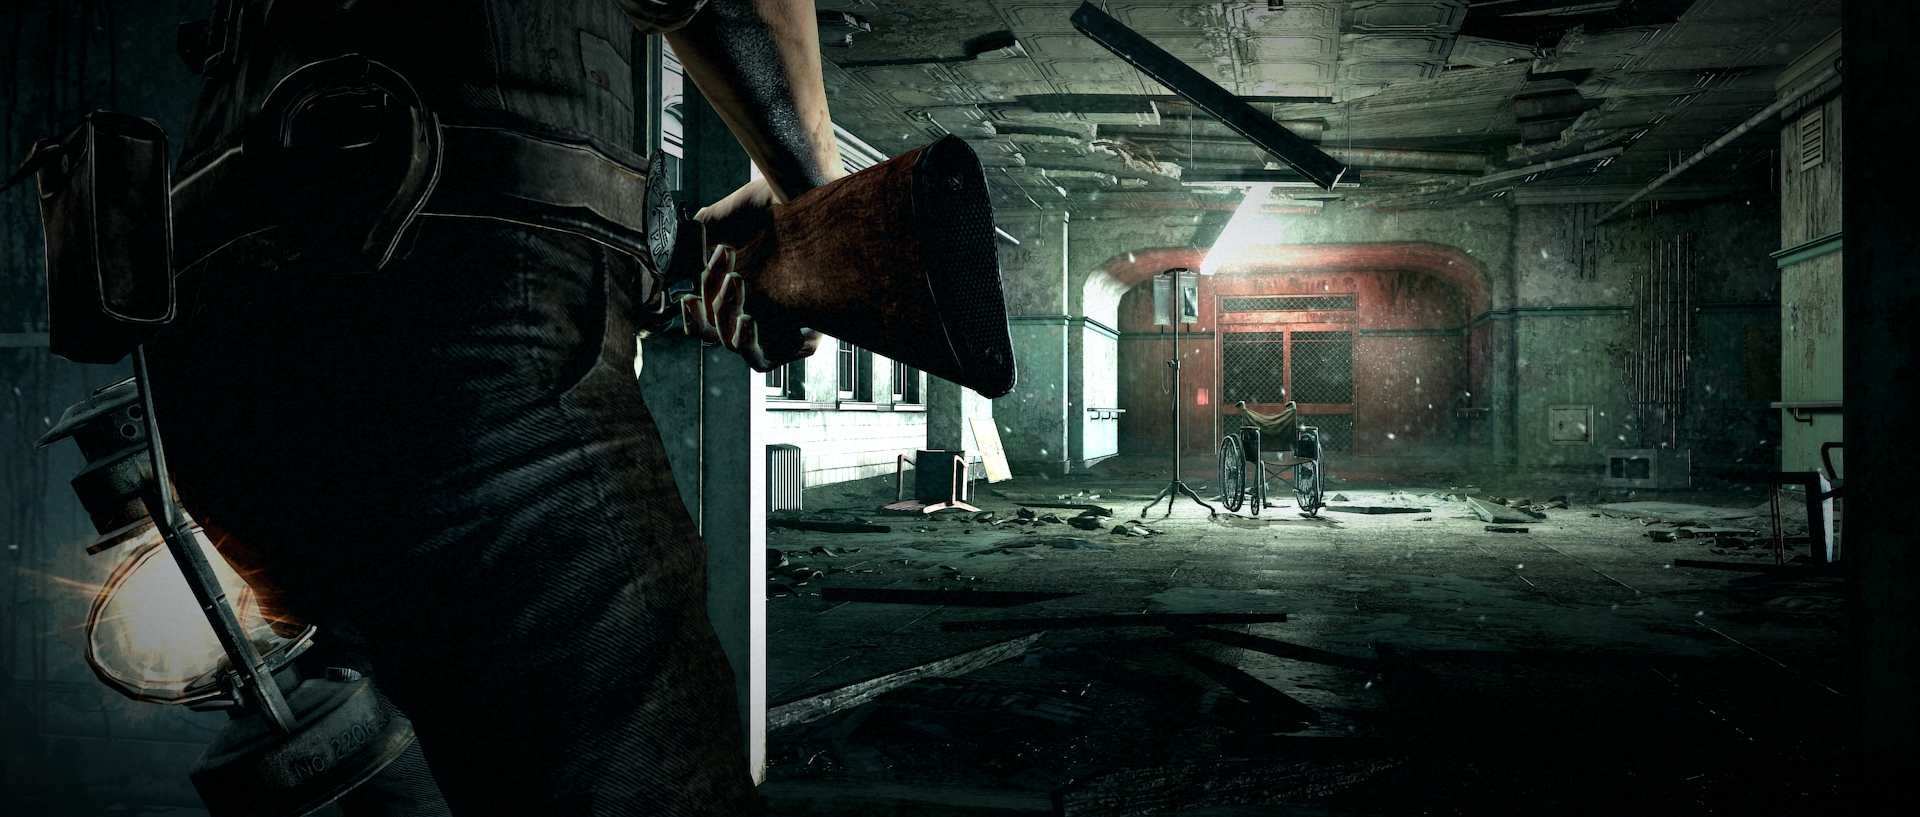 6souls games more just game with which scared creepy really last expecting than action there saying have story better will overall people typical pretty from seems understanding outlast combat style pick dont tier writing expect like know interesting might perspective loved whistleblower main about kidmans wanted example creeped never silent hill